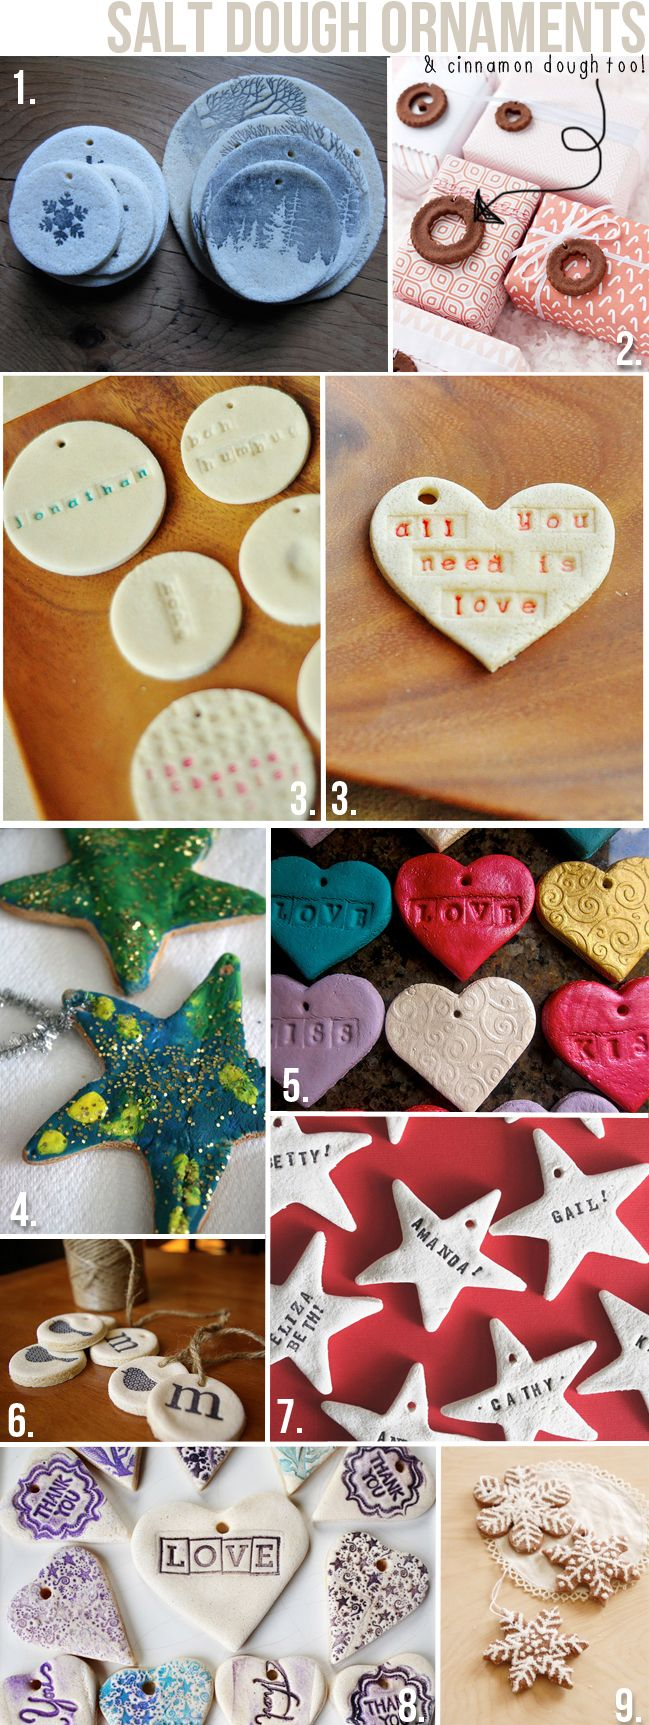 Making Christmas Ornaments With Flour - Best 25 salt dough ornaments ideas on pinterest salt dough projects modern baking cups and clay ornaments